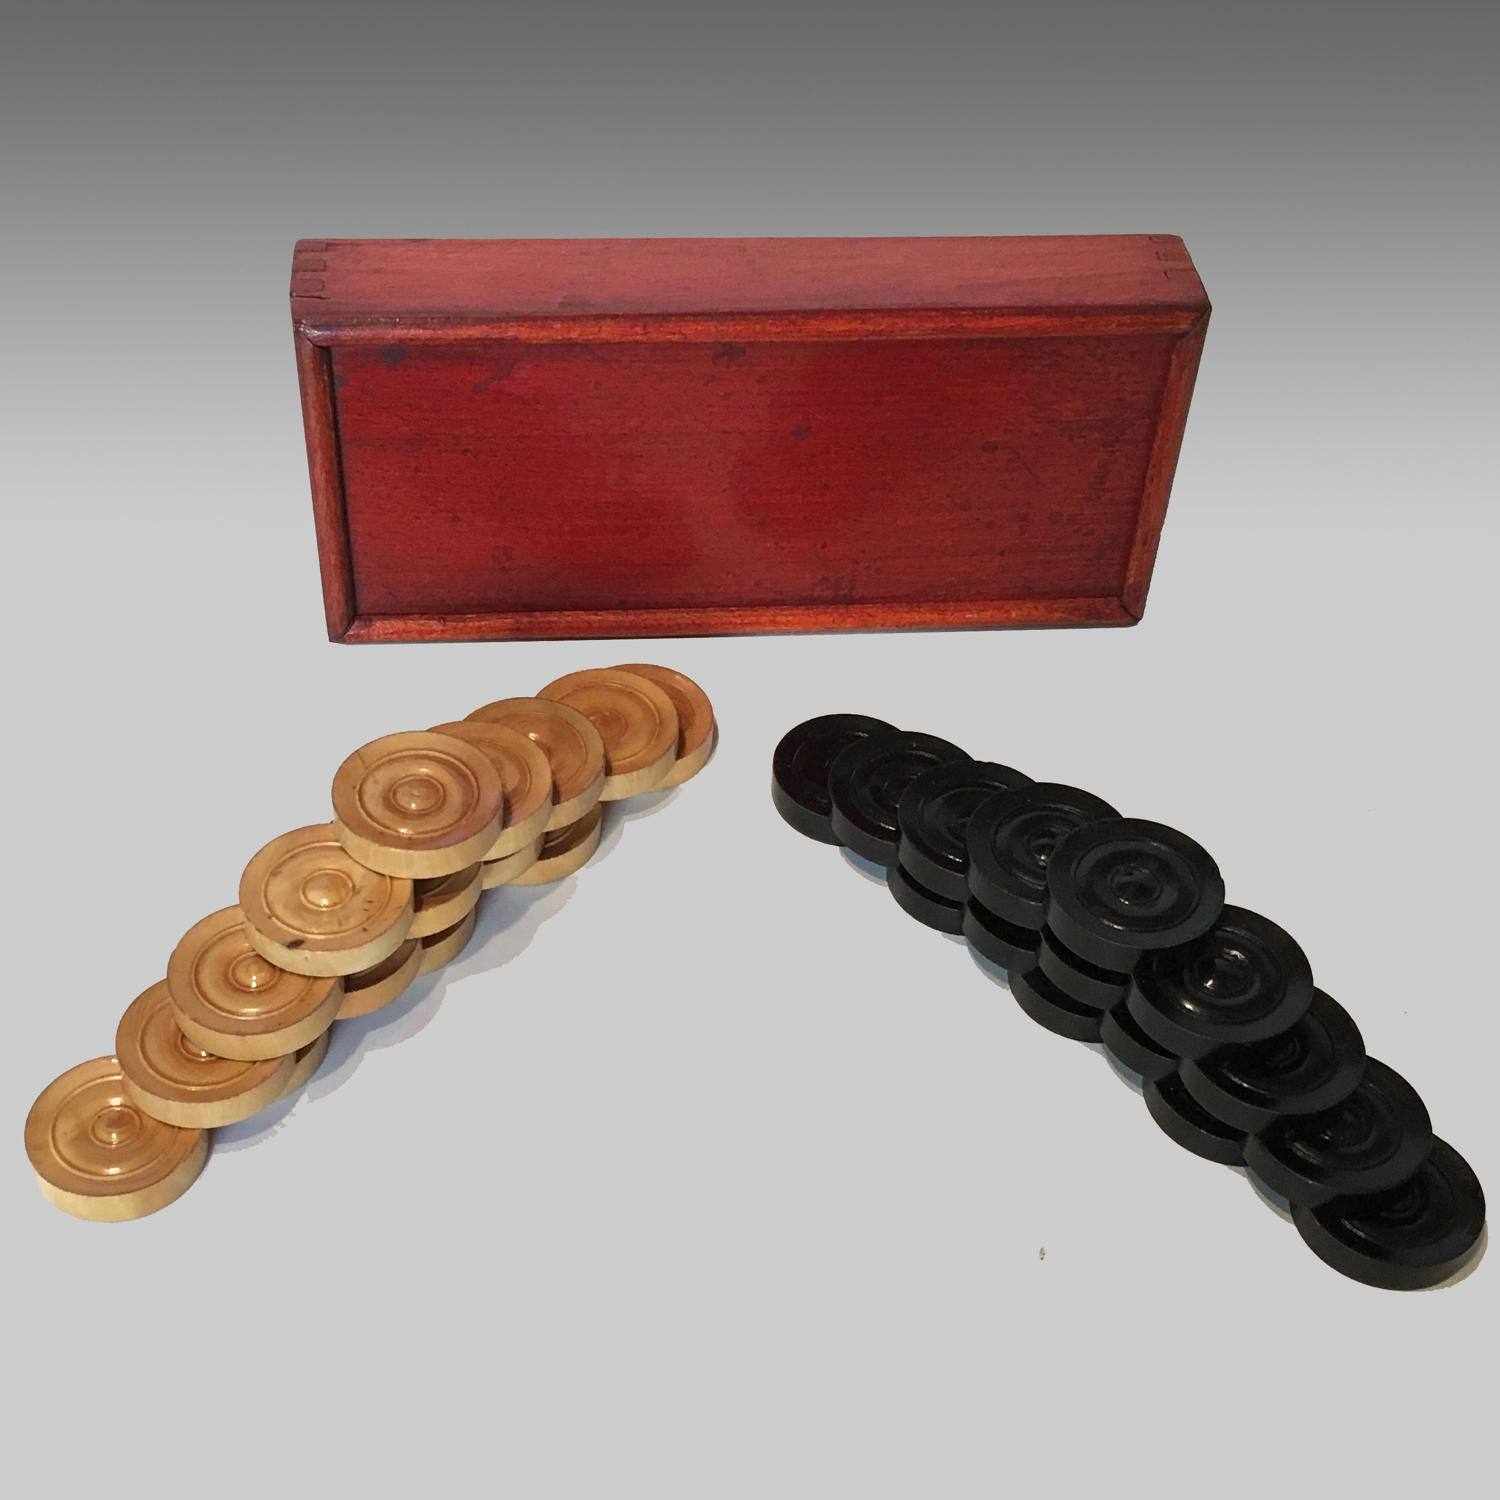 Boxed set of boxwood and ebony backgammon or draughtsmen